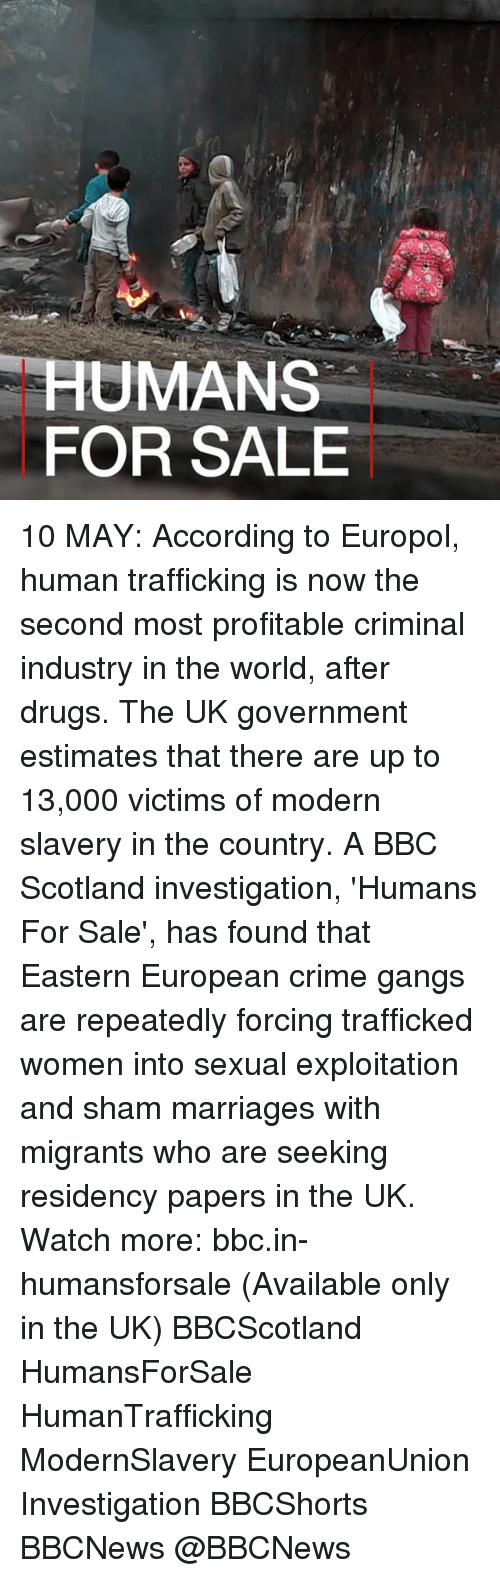 Crime, Drugs, and Memes: HUMANS  FOR SALE 10 MAY: According to Europol, human trafficking is now the second most profitable criminal industry in the world, after drugs. The UK government estimates that there are up to 13,000 victims of modern slavery in the country. A BBC Scotland investigation, 'Humans For Sale', has found that Eastern European crime gangs are repeatedly forcing trafficked women into sexual exploitation and sham marriages with migrants who are seeking residency papers in the UK. Watch more: bbc.in-humansforsale (Available only in the UK) BBCScotland HumansForSale HumanTrafficking ModernSlavery EuropeanUnion Investigation BBCShorts BBCNews @BBCNews